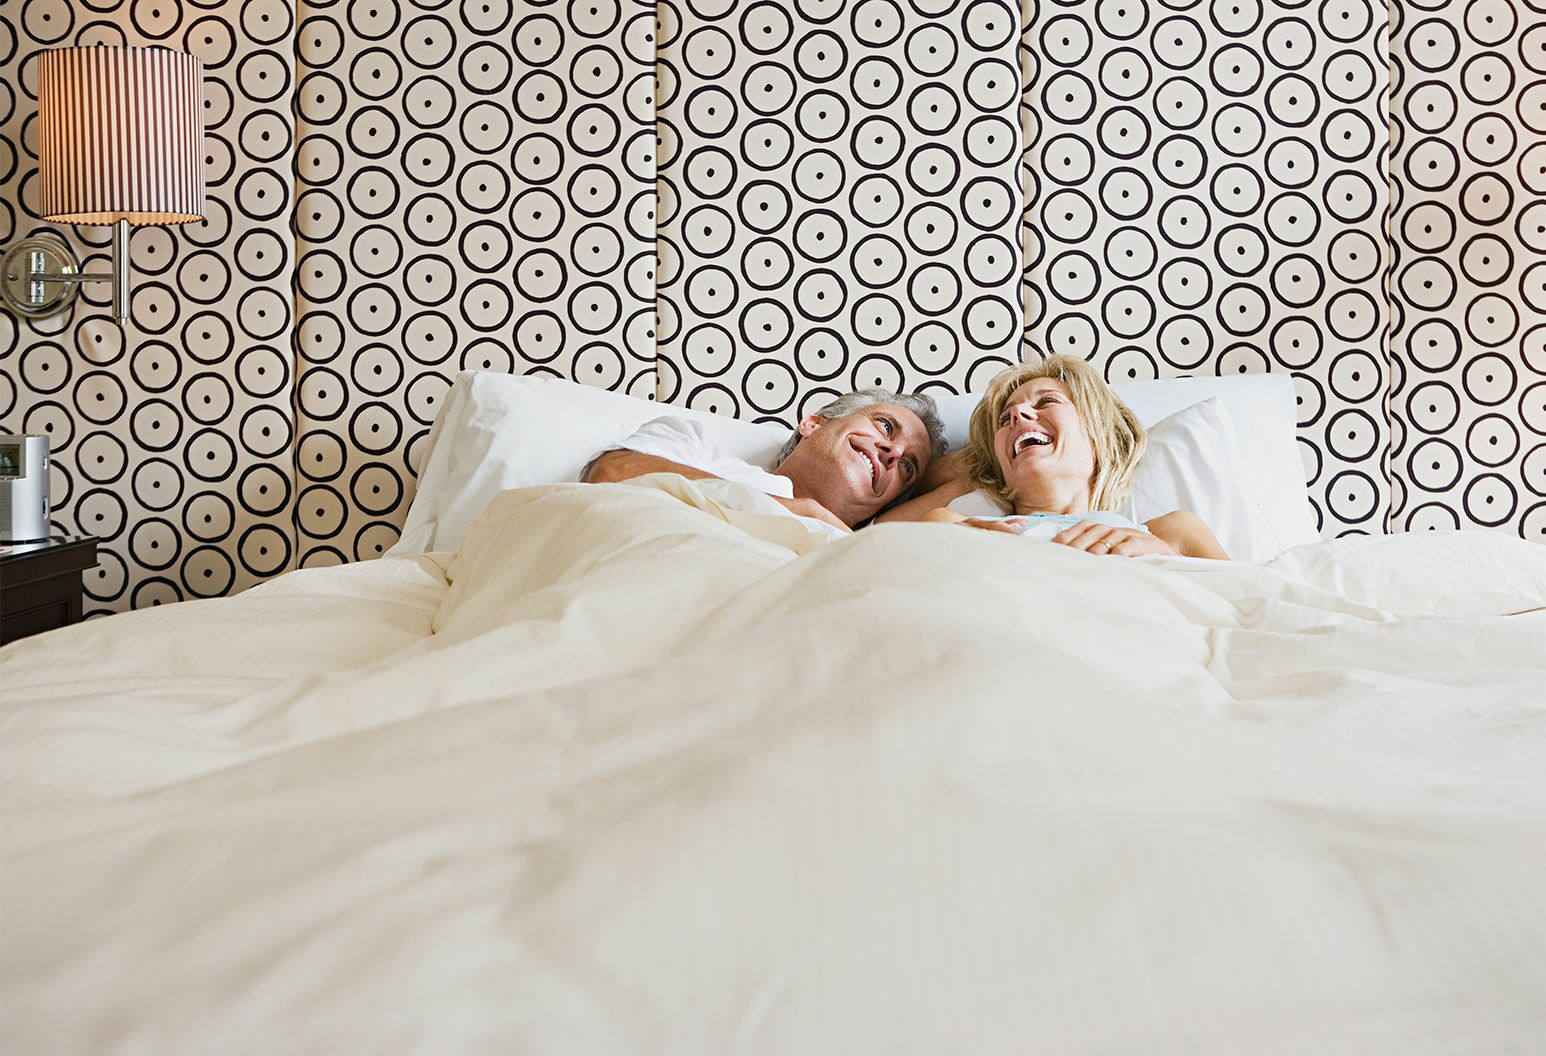 Mature couple in bed laughing under white sheeted covers against a circular patterned pleated wall.